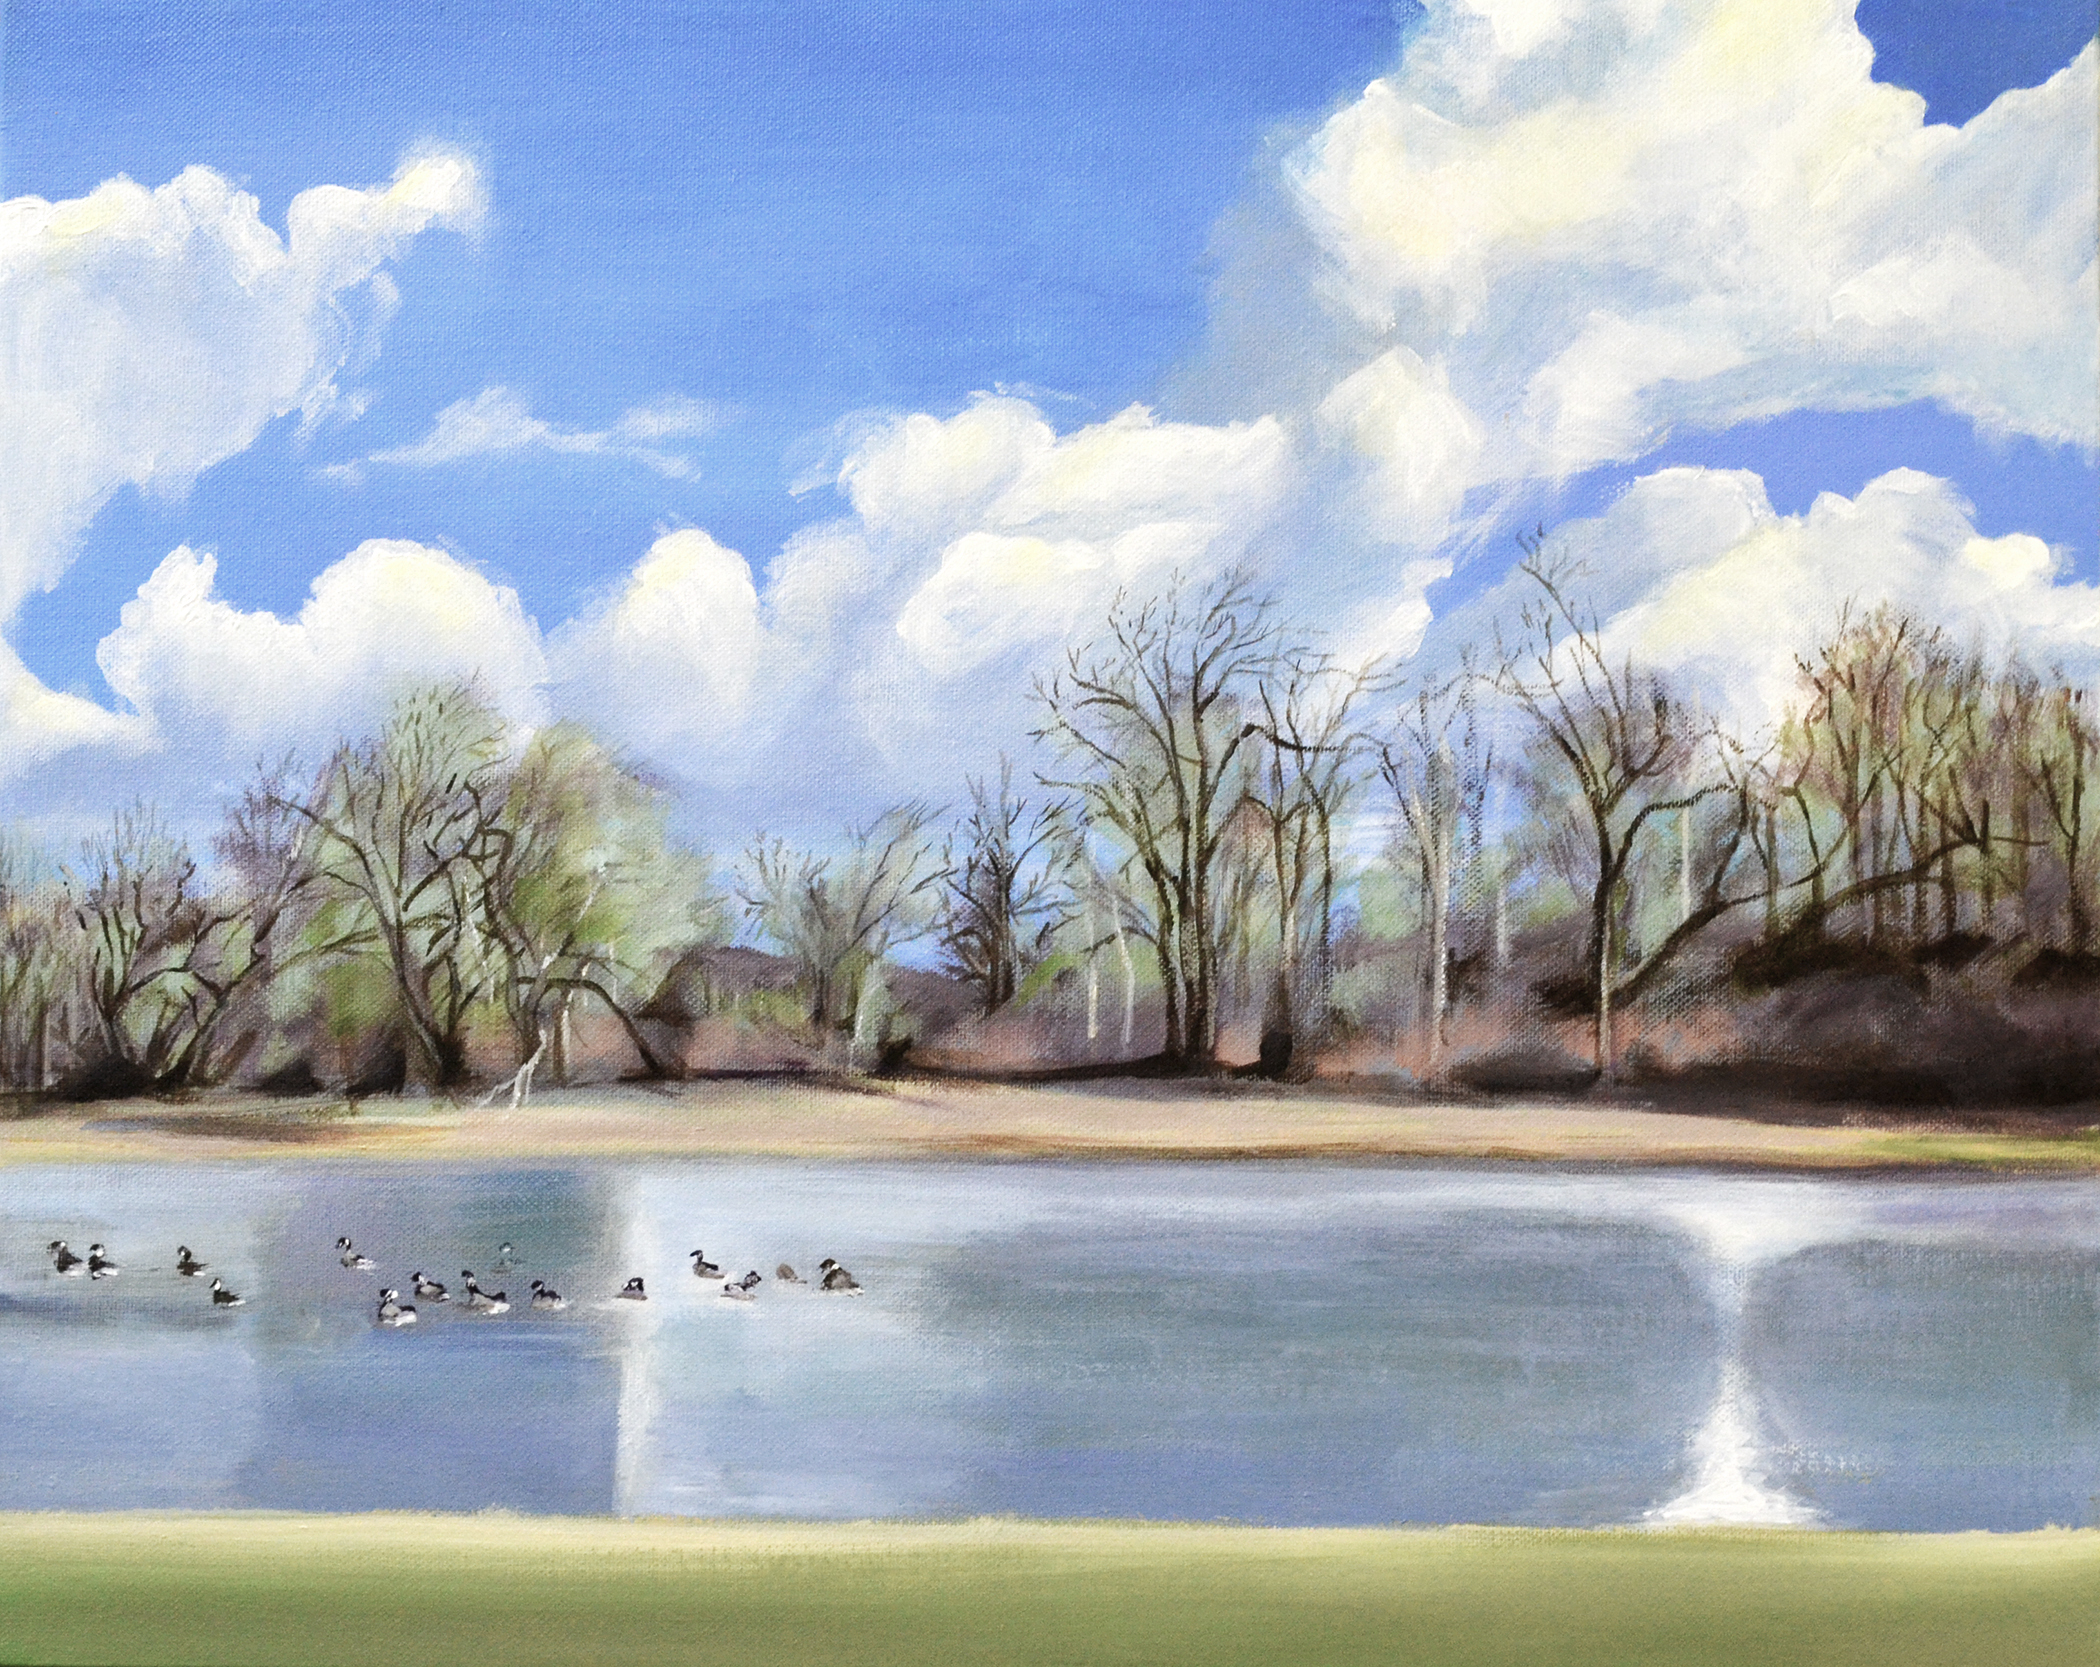 Watering Hole with Geese